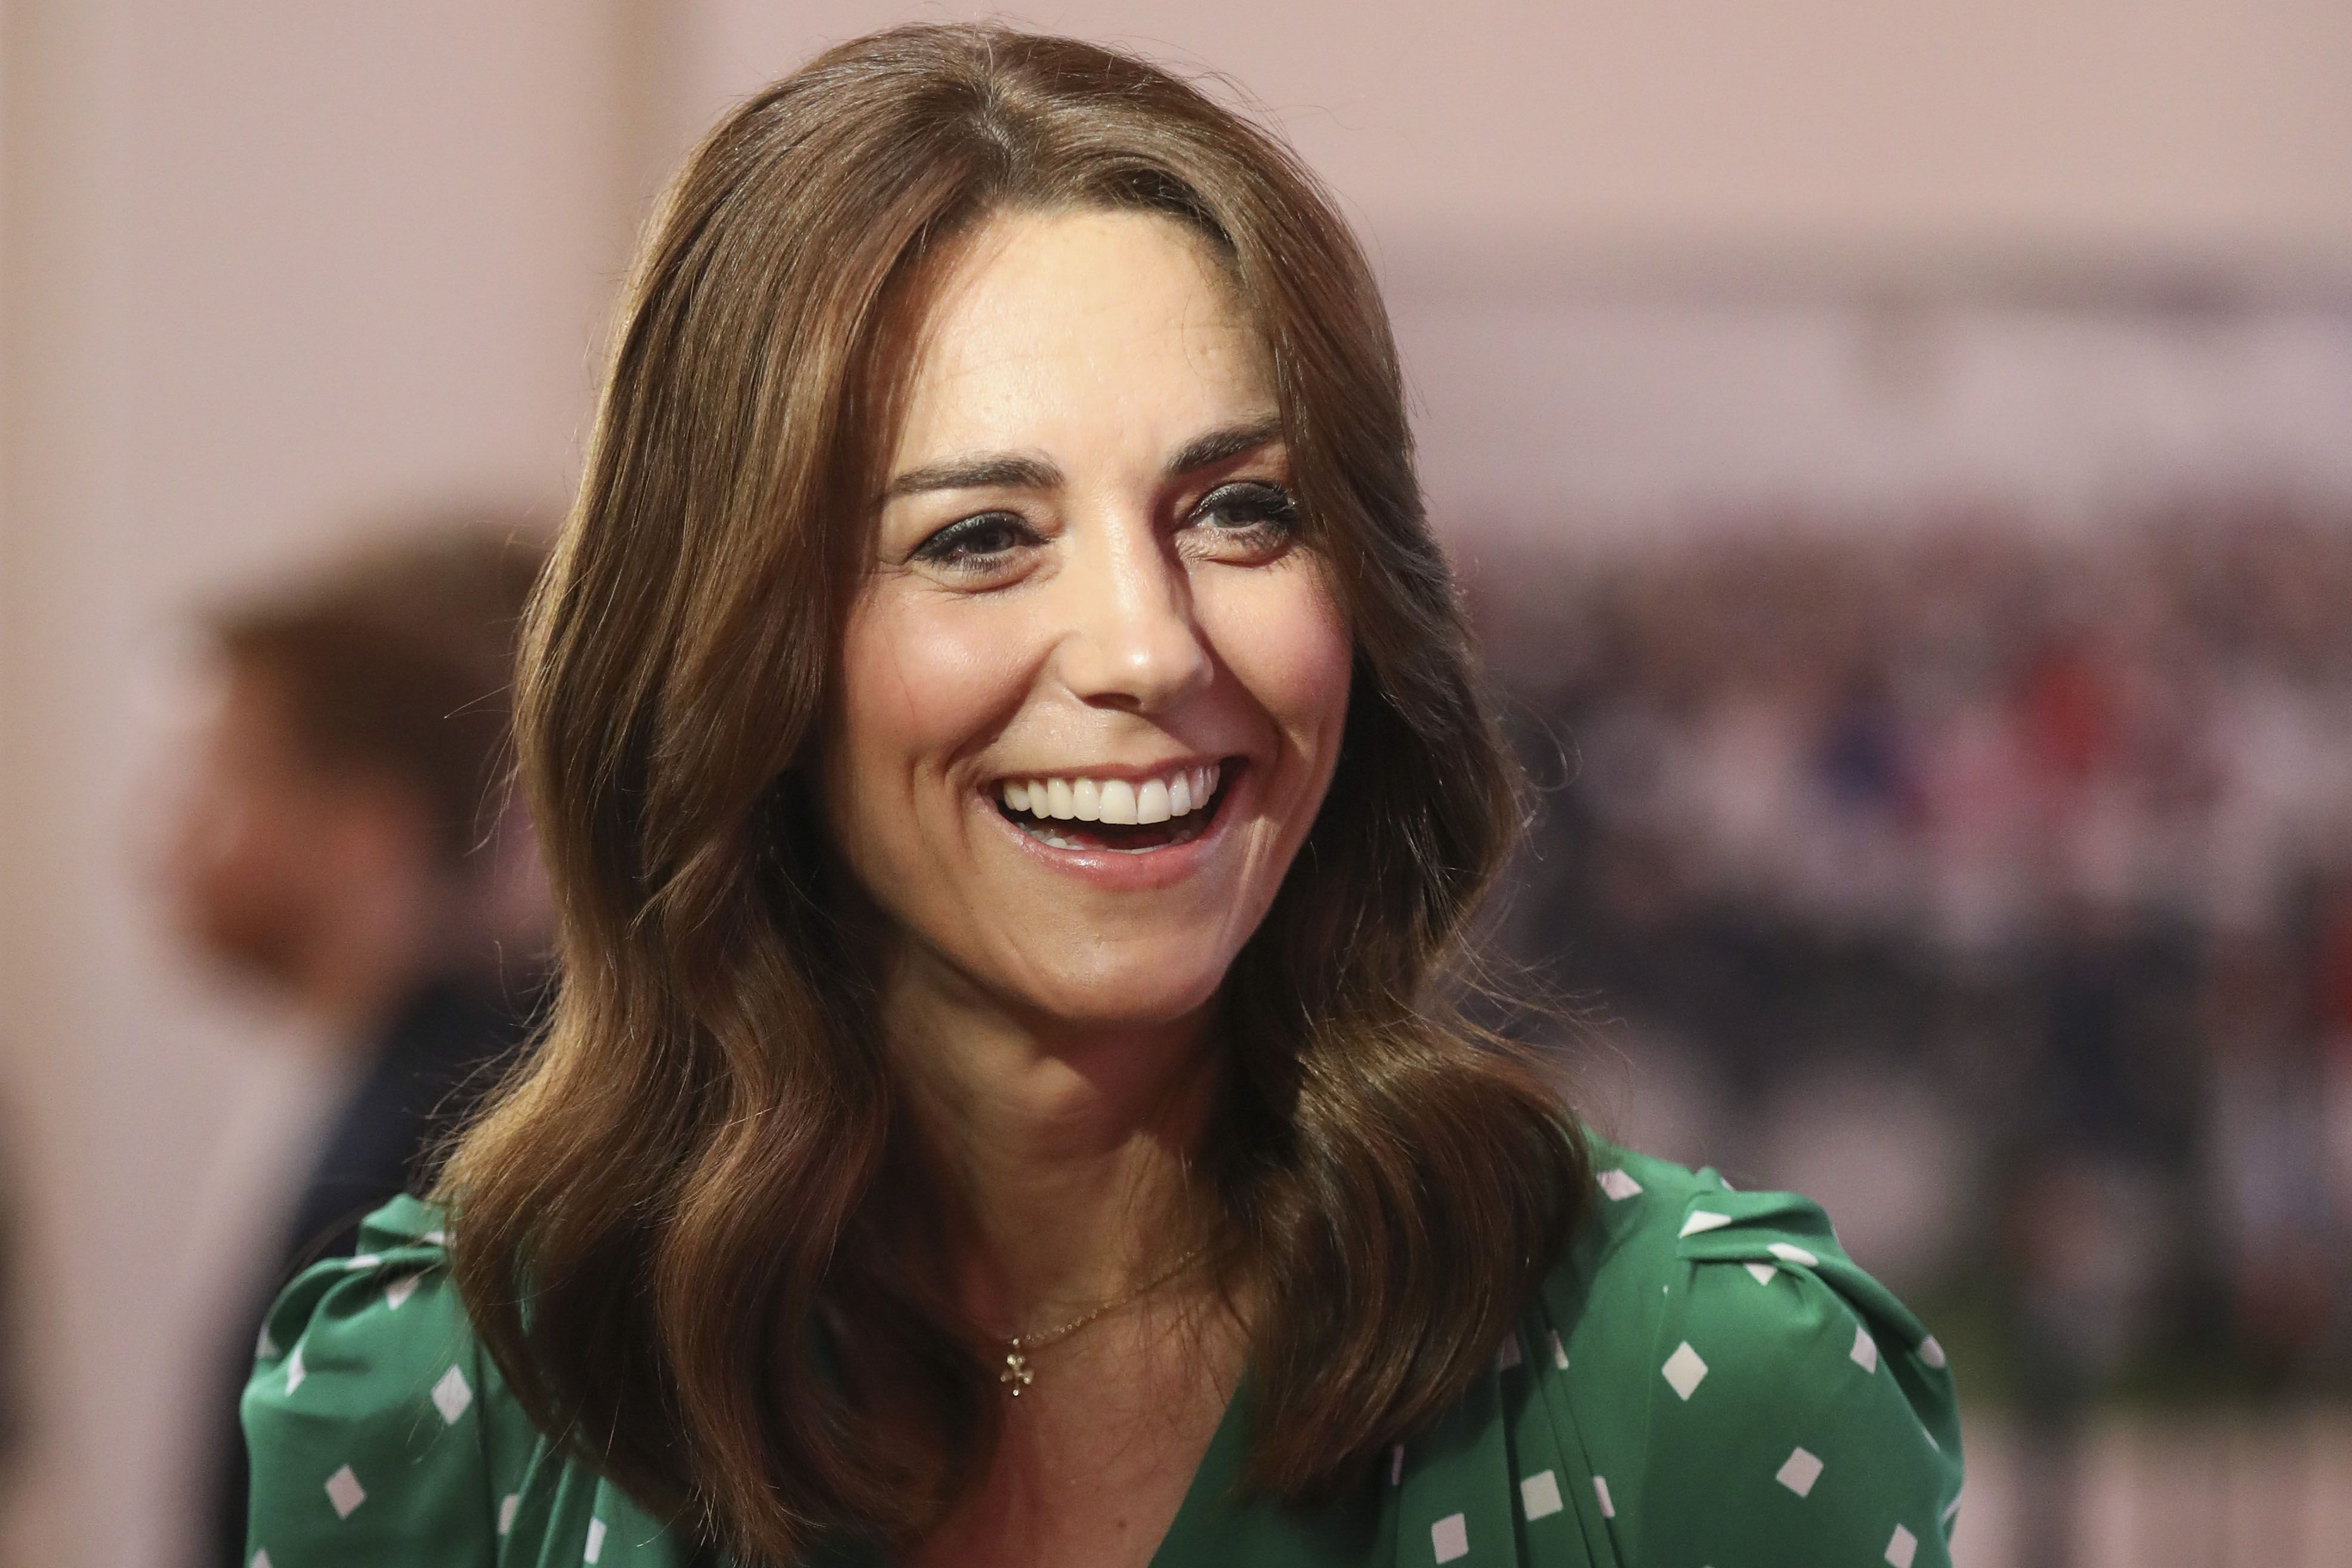 see kate middleton s new haircut with bangs debuted in ireland in photos kate middleton s new haircut with bangs